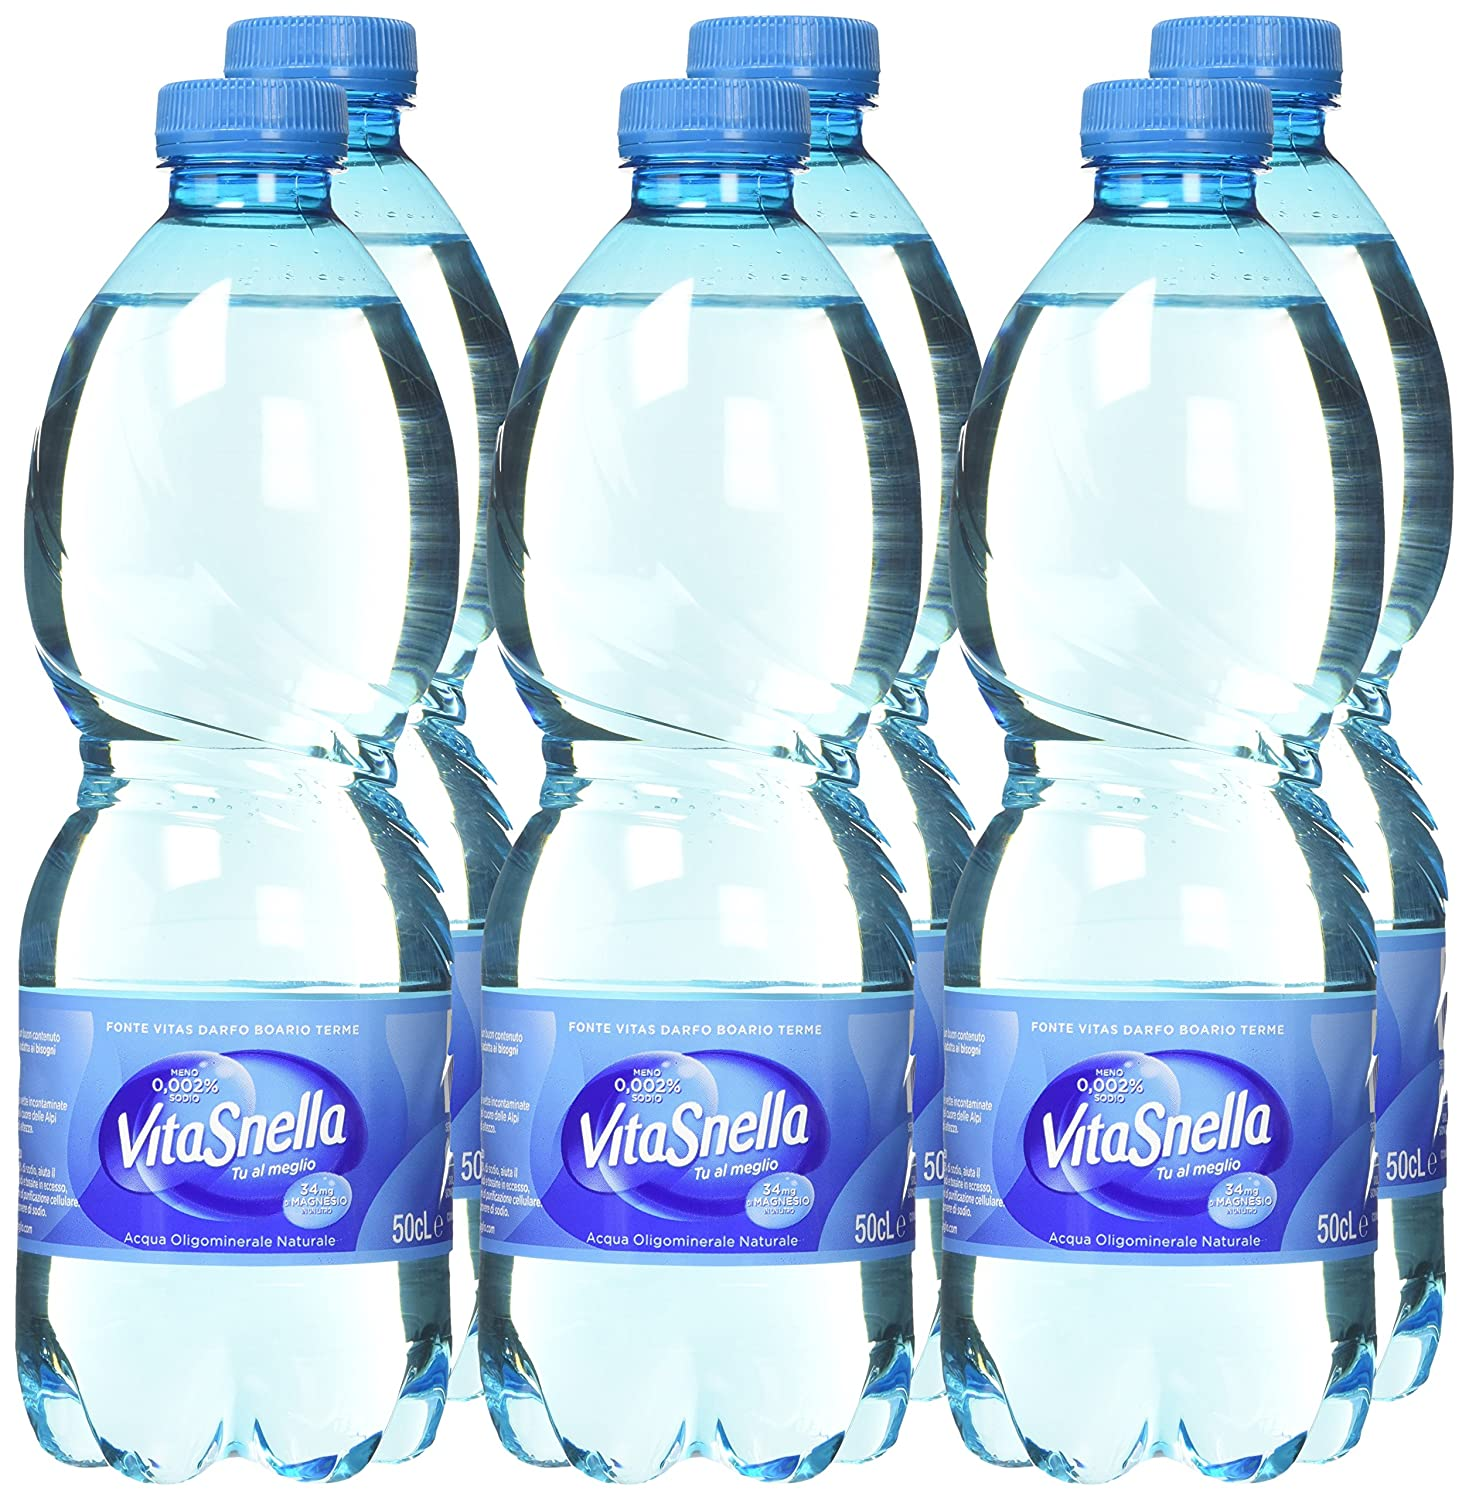 Amazon.com : Acqua Vitasnella: Natural Spring Water 16.9 Fluid Ounce (500ml) Bottles (Pack of 6) [ Italian Import ] : Grocery & Gourmet Food